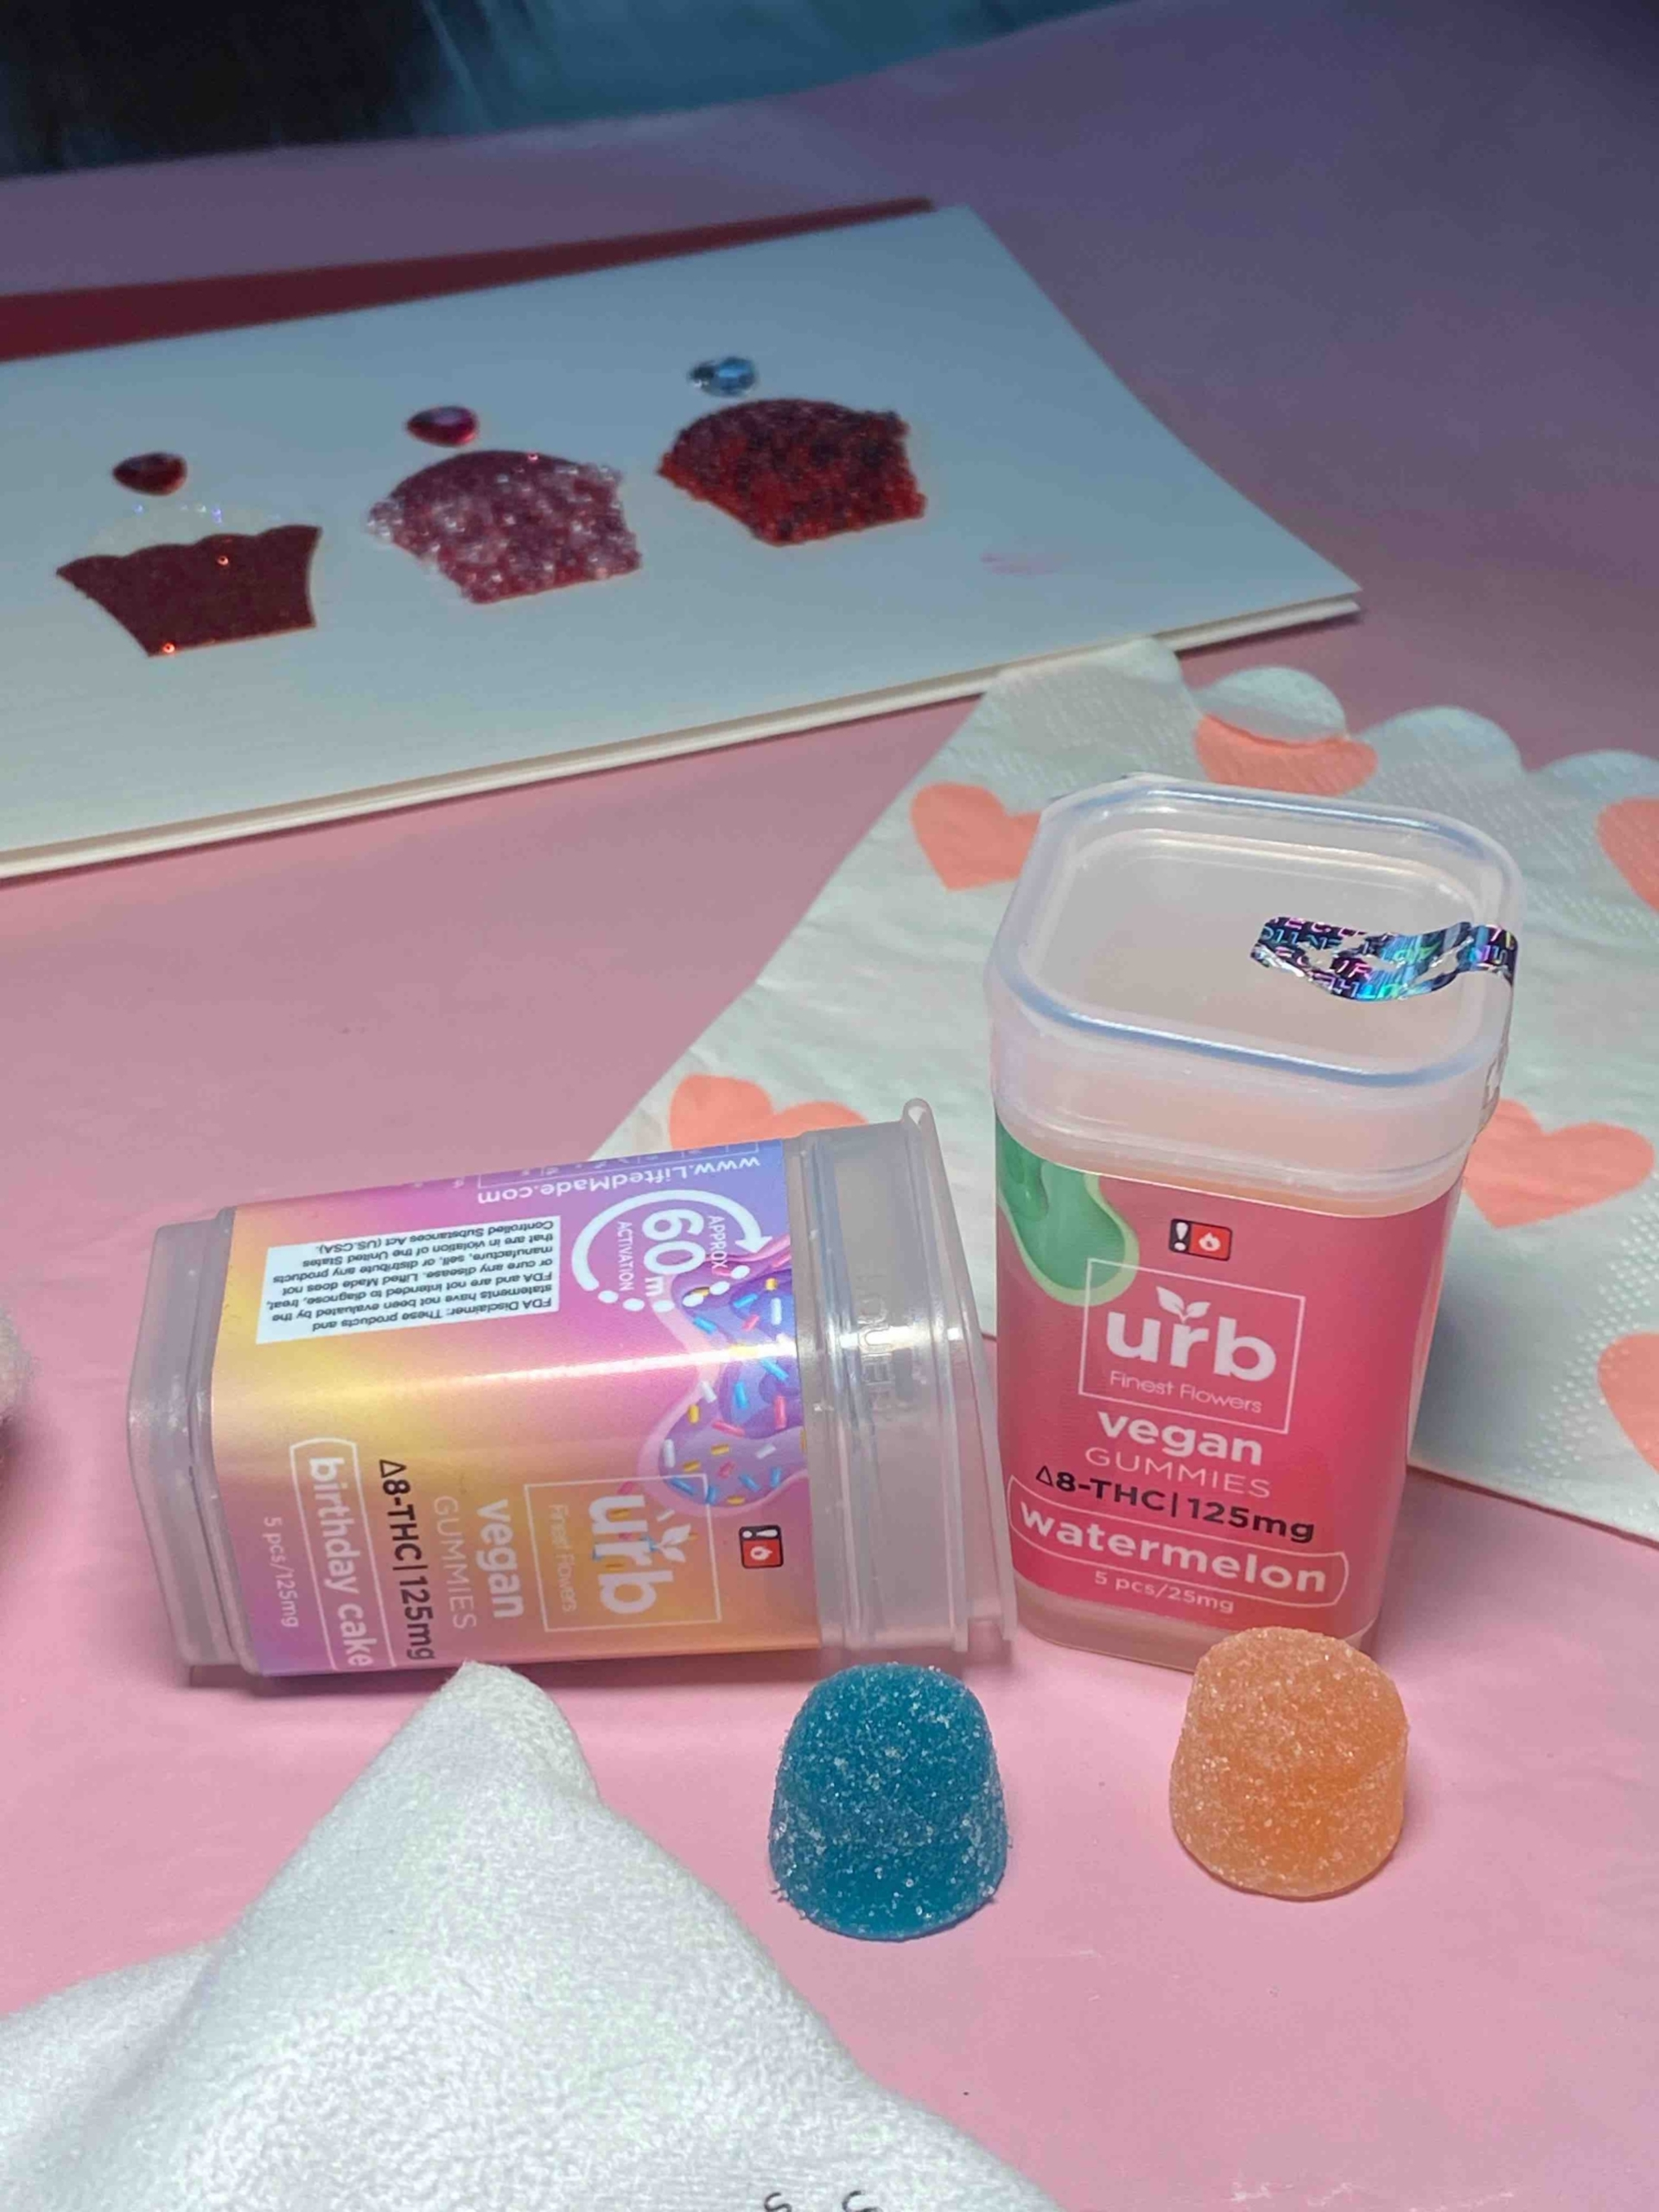 Urb THC Gummies Top Things To Do This Valentine's Day At Home To Make It Romantic & Memorable